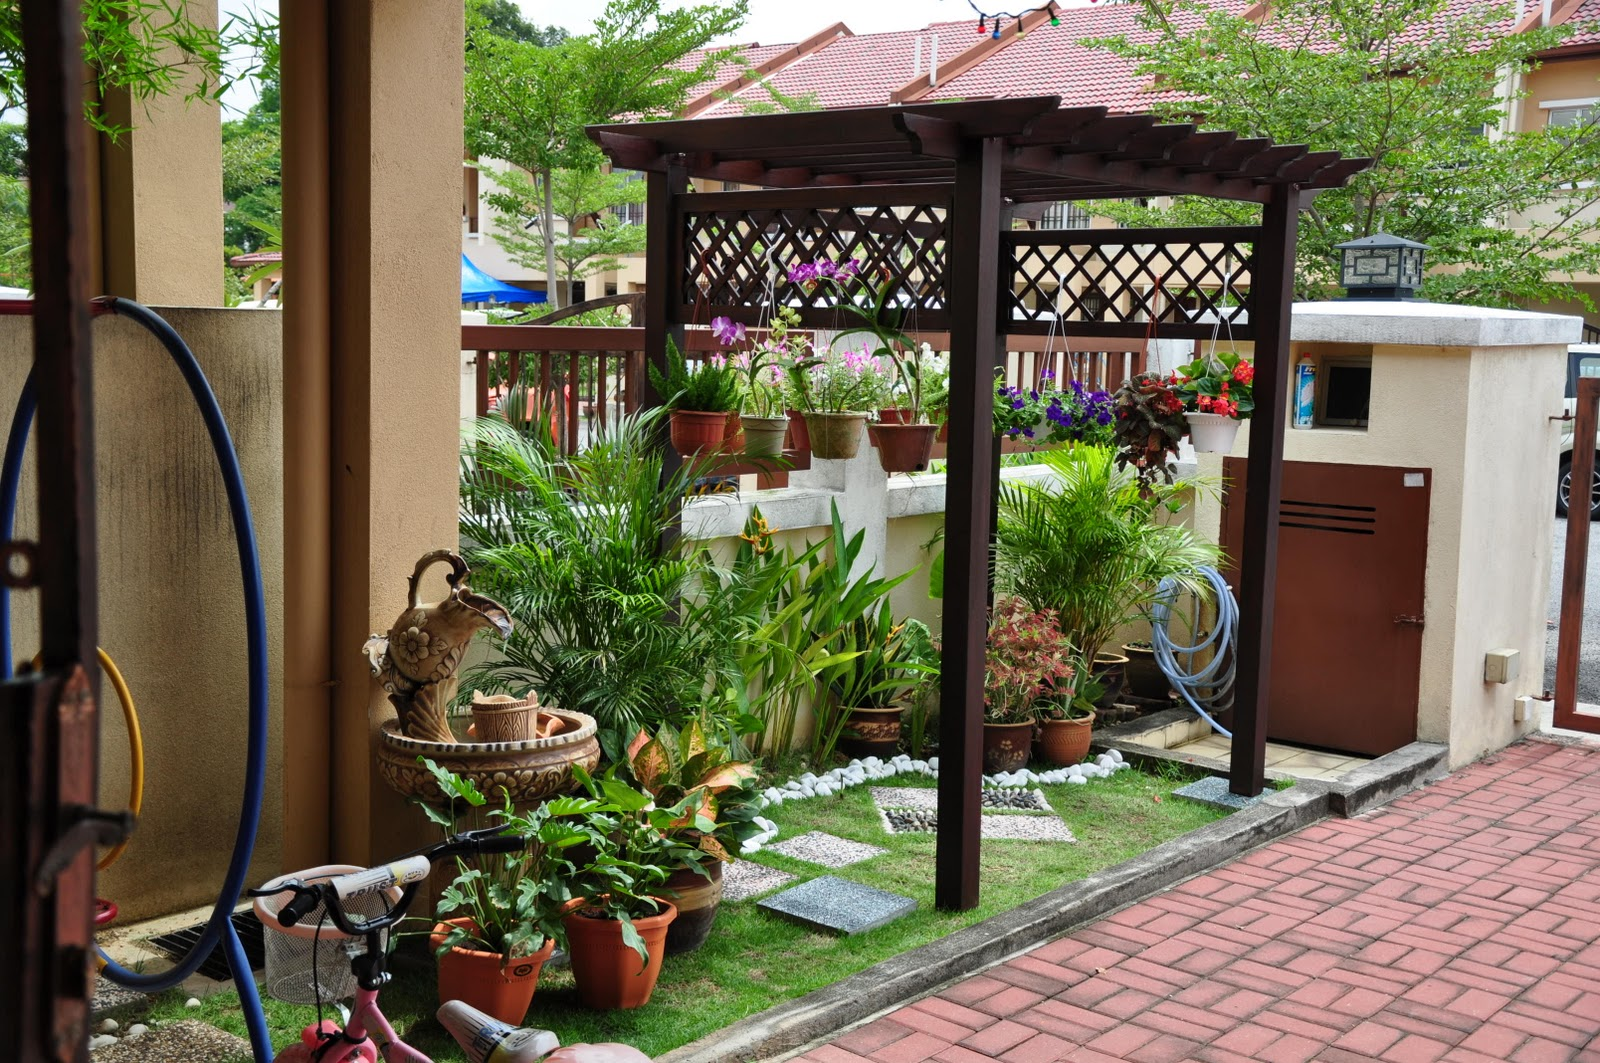 Blogspot For Sale: Idea Lanskap Rumah Teres